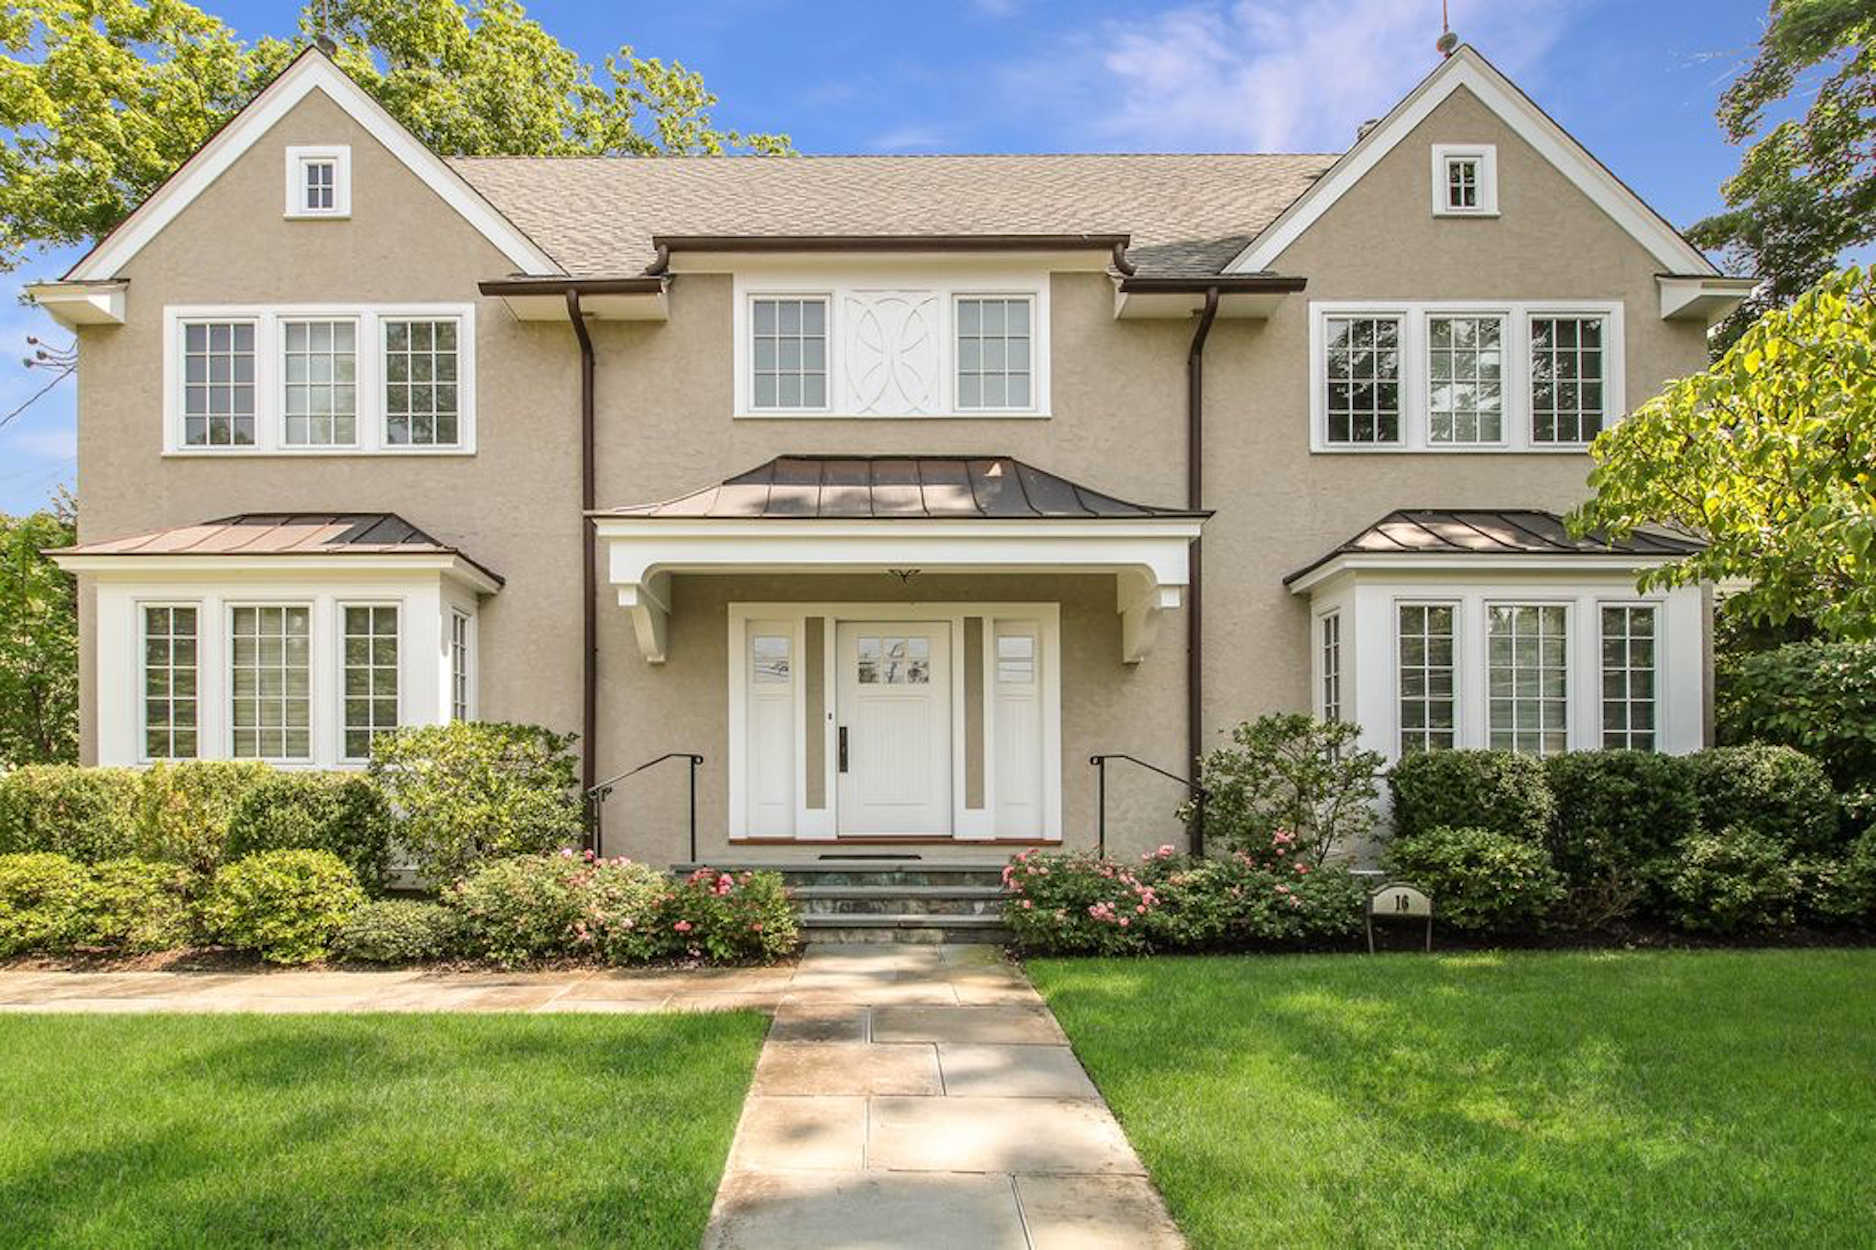 SOLD  16 Rectory Lane Scarsdale, NY. Represented the Buyer  (2019)